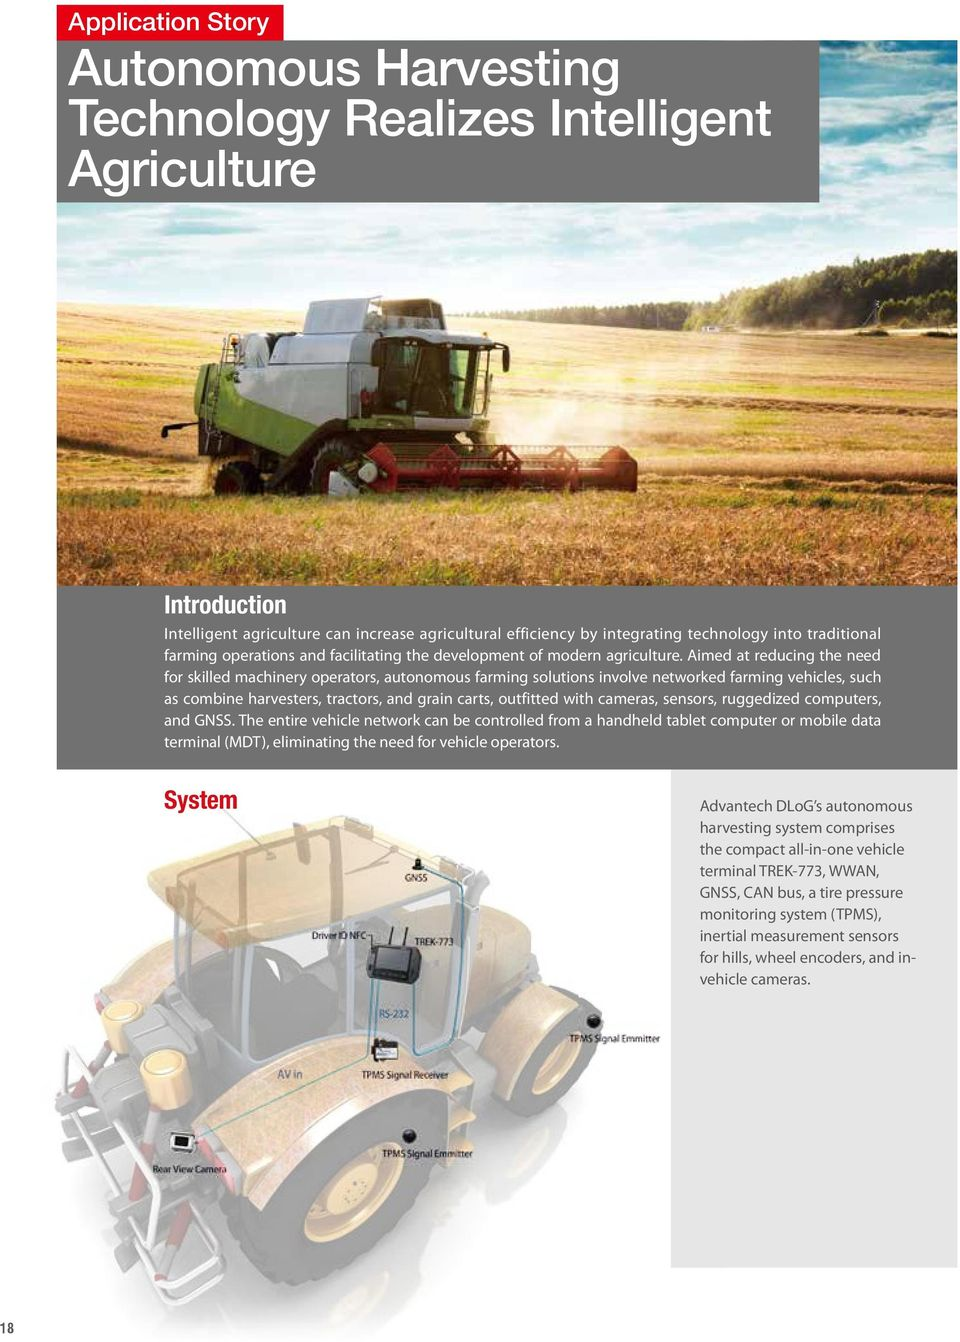 Aimed at reducing the need for skilled machinery operators, autonomous farming solutions involve networked farming vehicles, such as combine harvesters, tractors, and grain carts, outfitted with